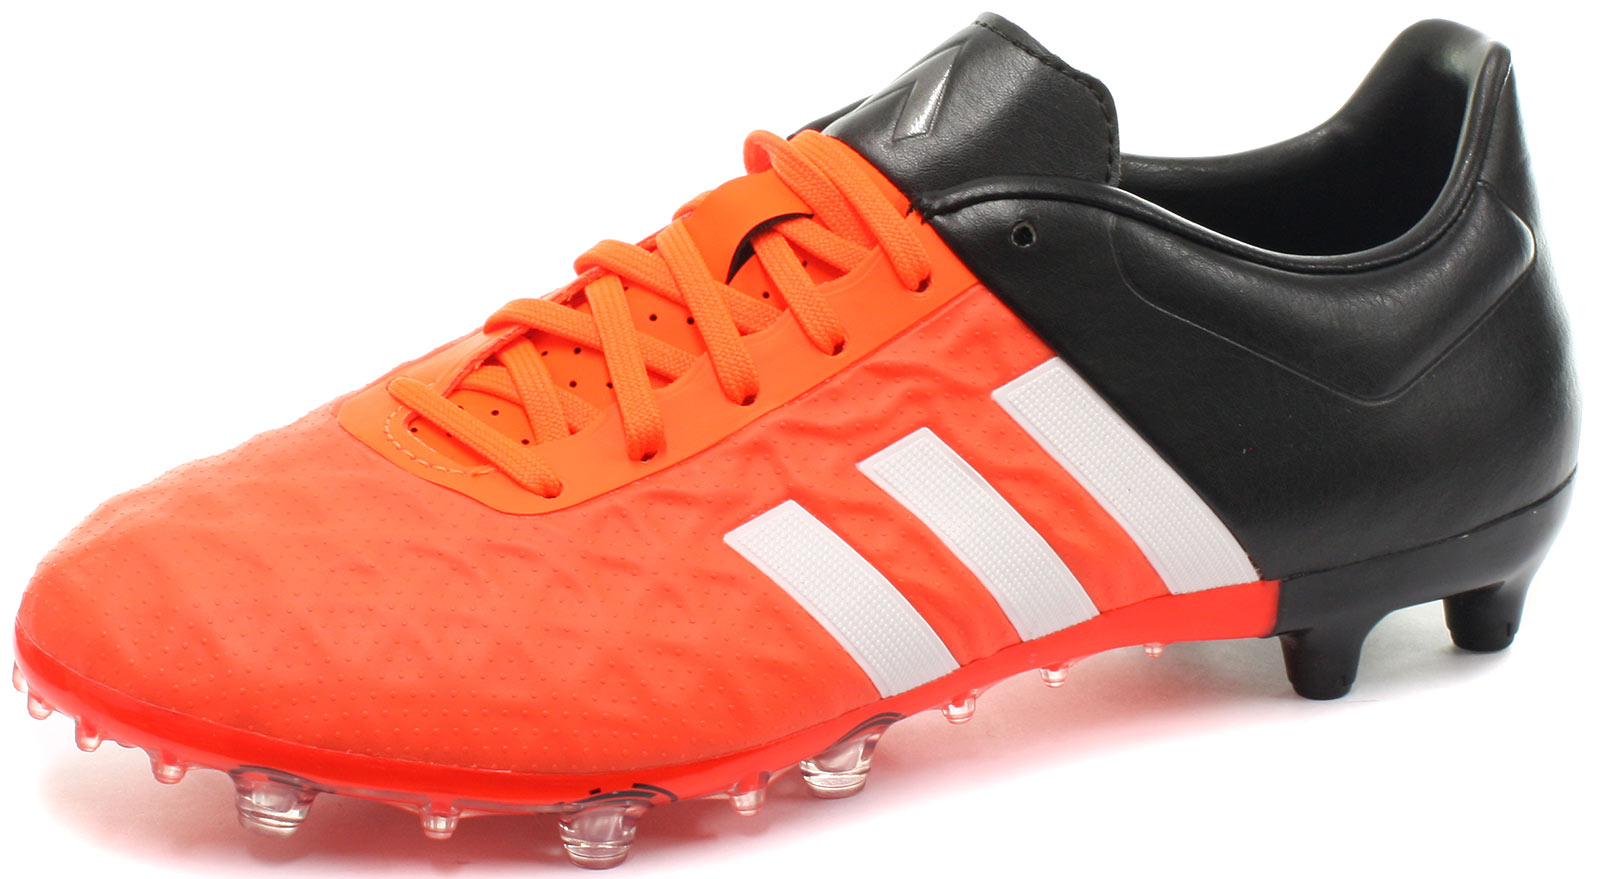 Nouveau-Adidas-ACE-15-2-FG-AG-Chaussures-foot-HOMMES-FOOTBALL-Cale